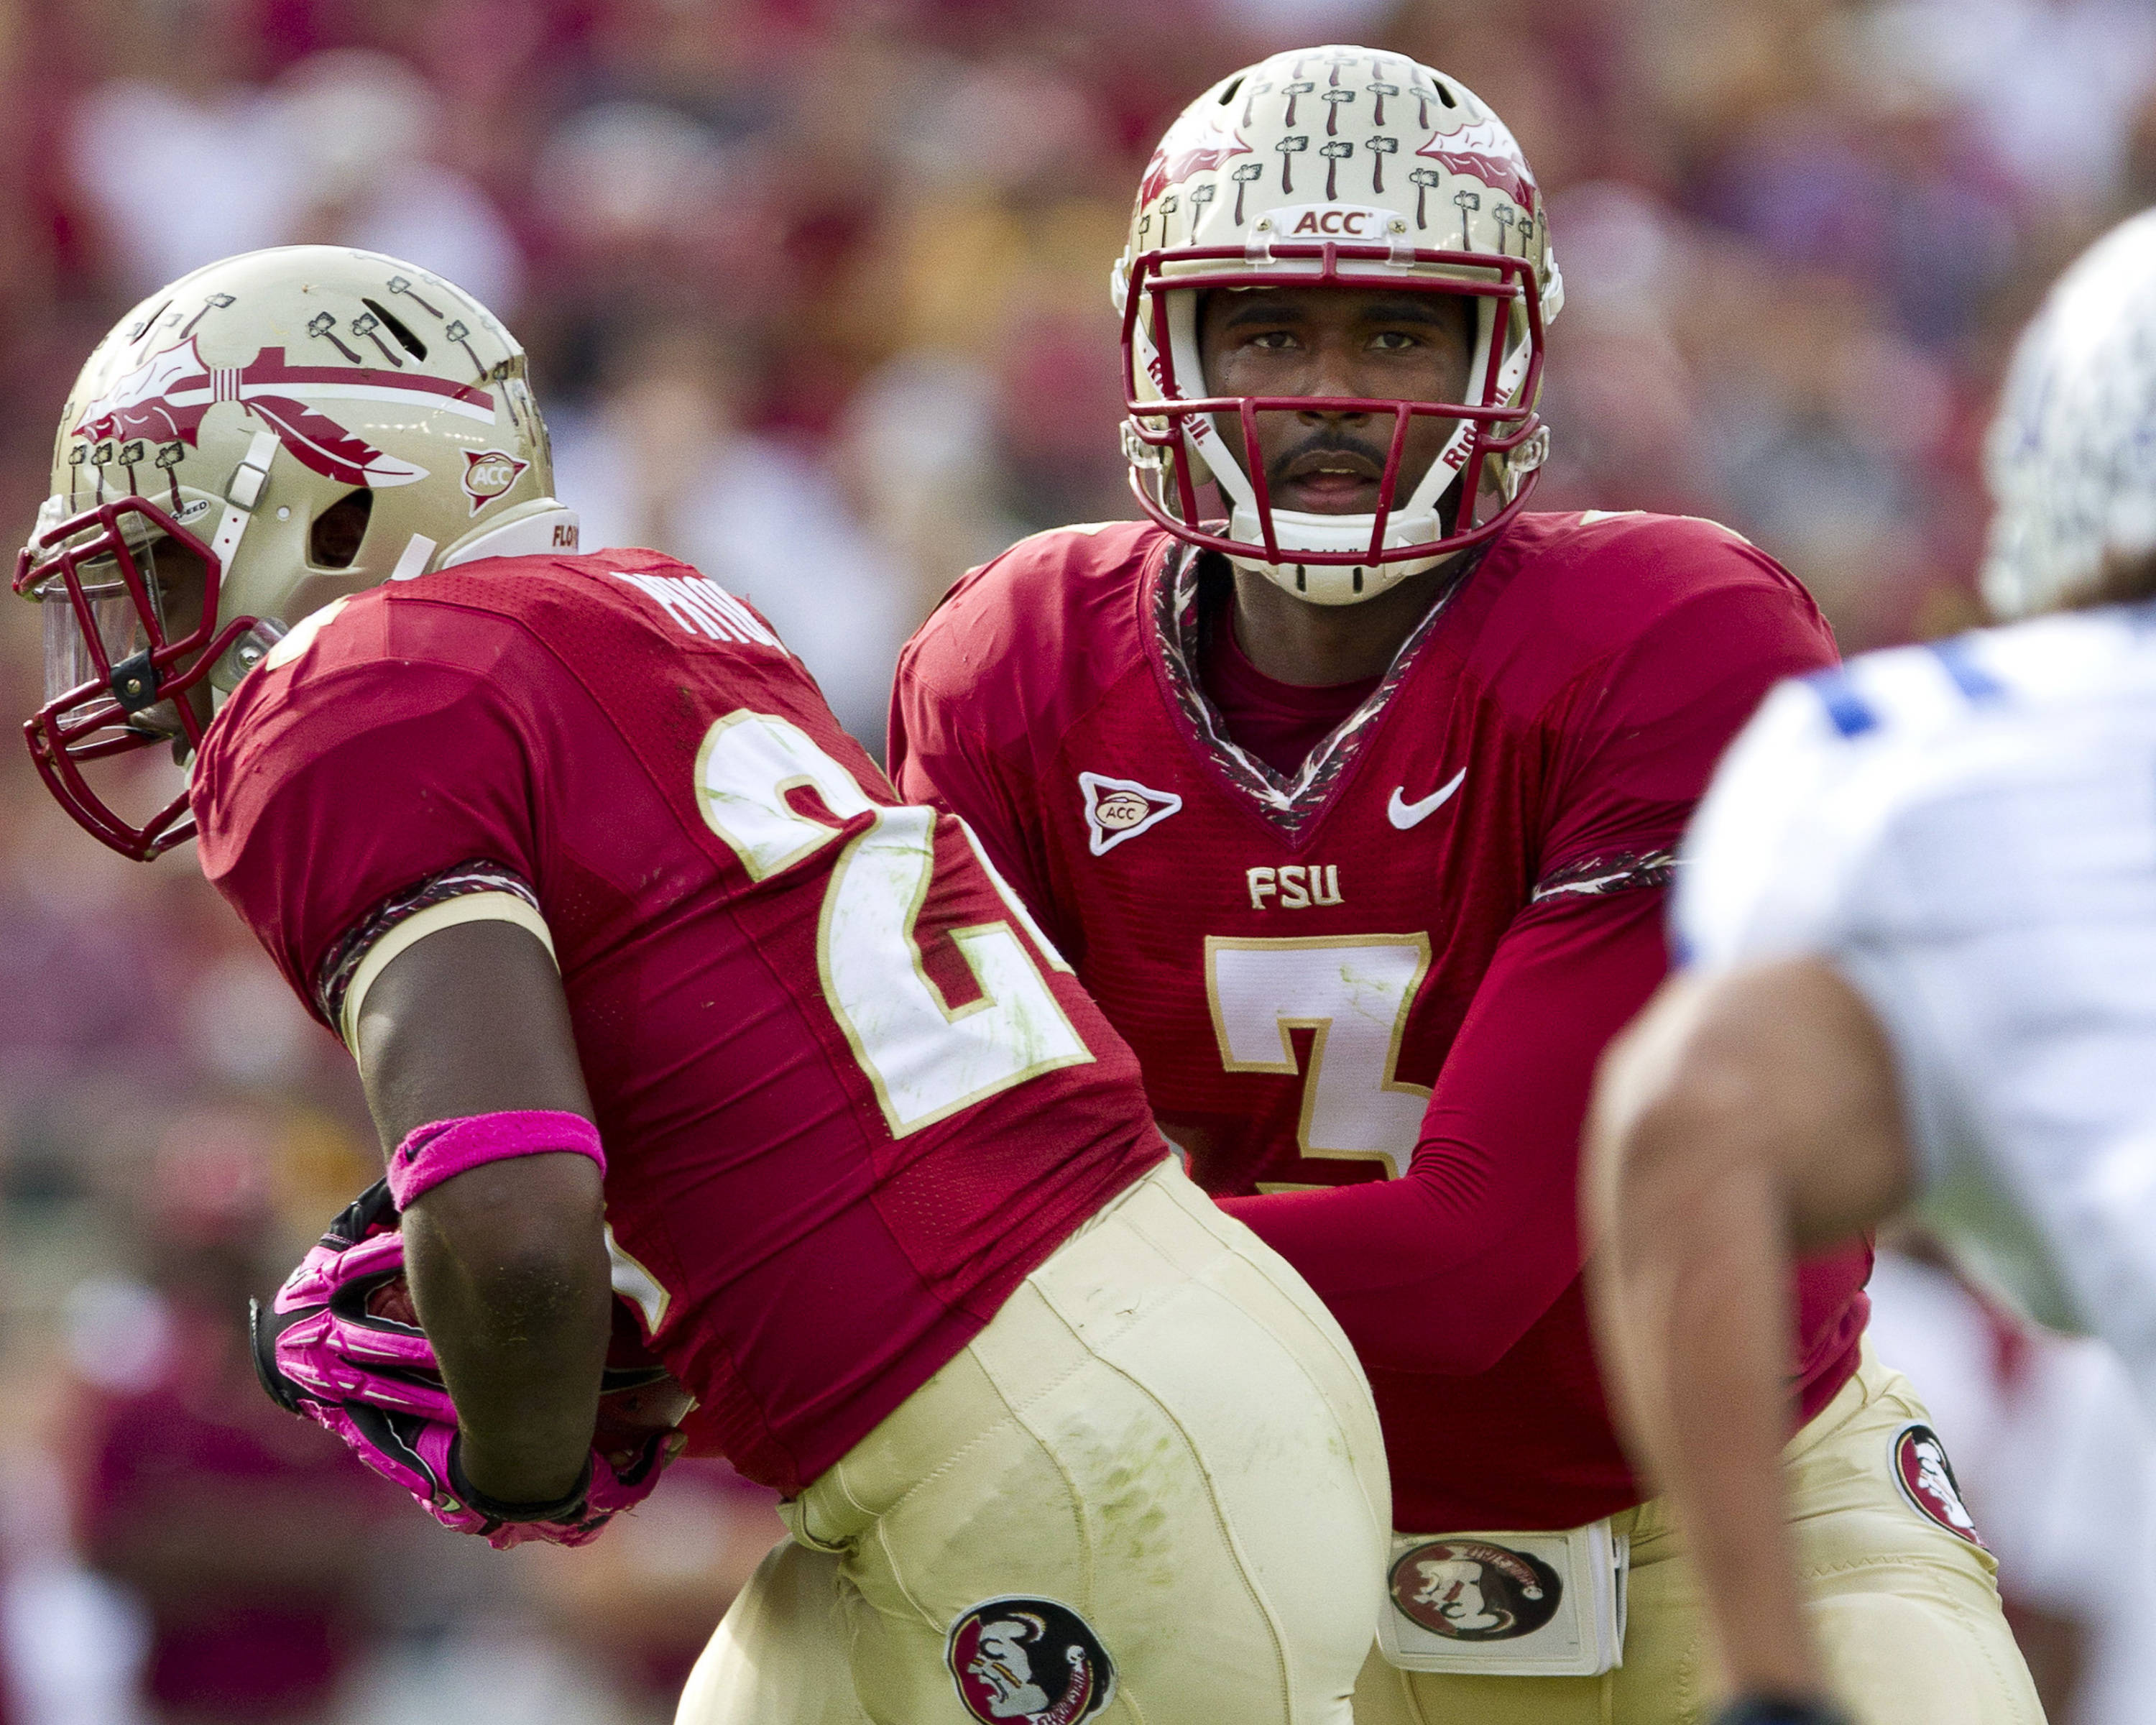 EJ Manuel (3) hands the ball off to Lonnie Pryor (24) during FSU's 48-7 victory over Duke on October 27, 2012 in Tallahassee, Fla.